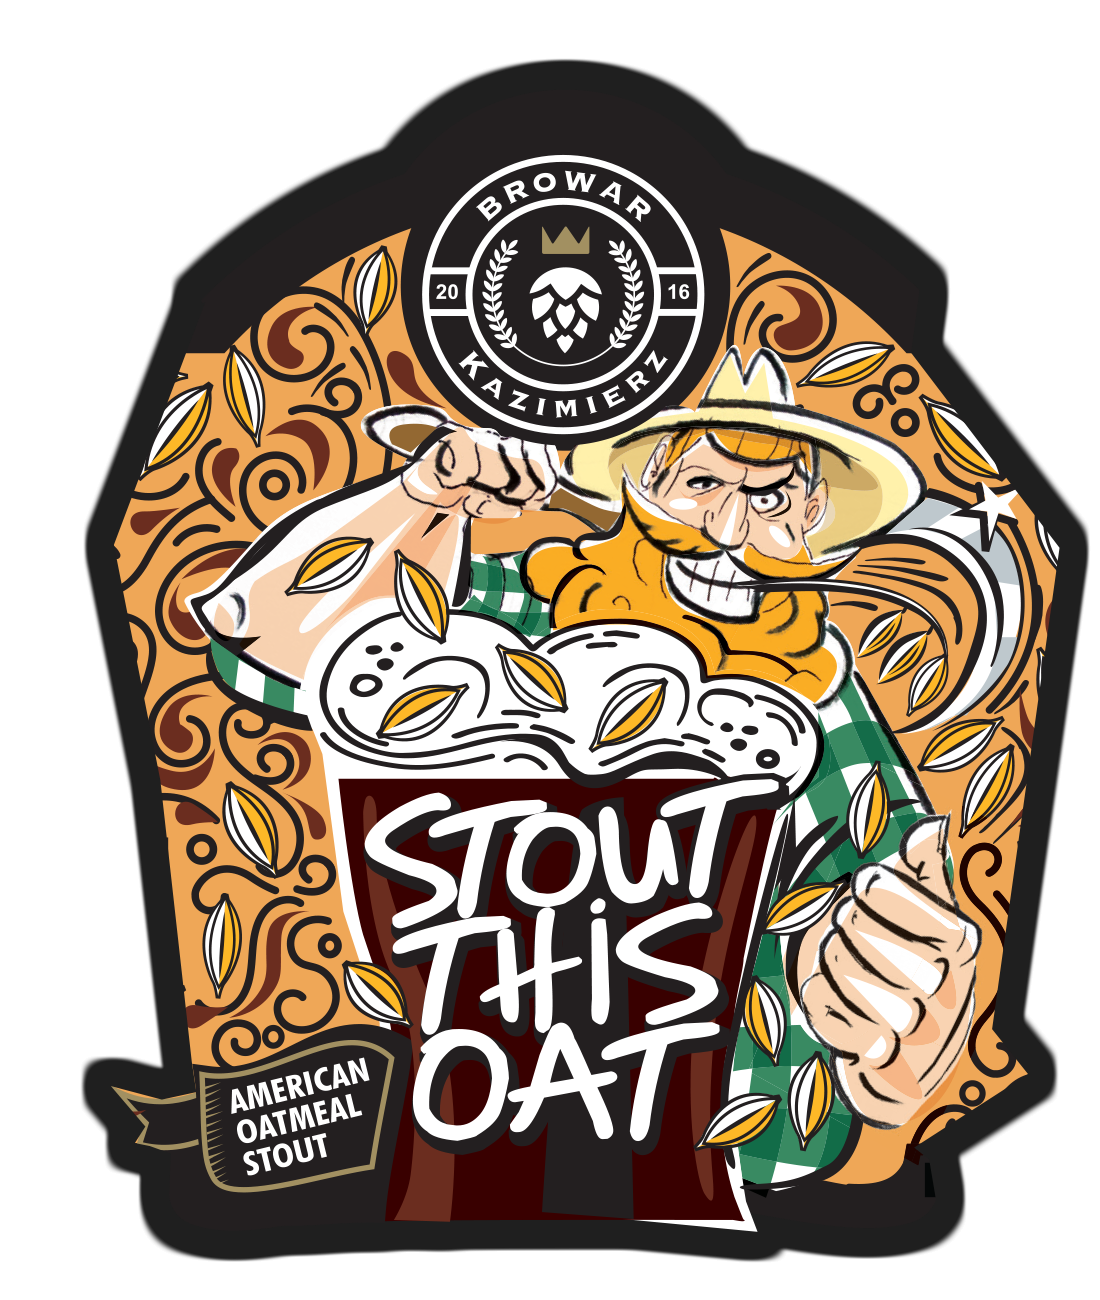 Piwo Stout this OAT